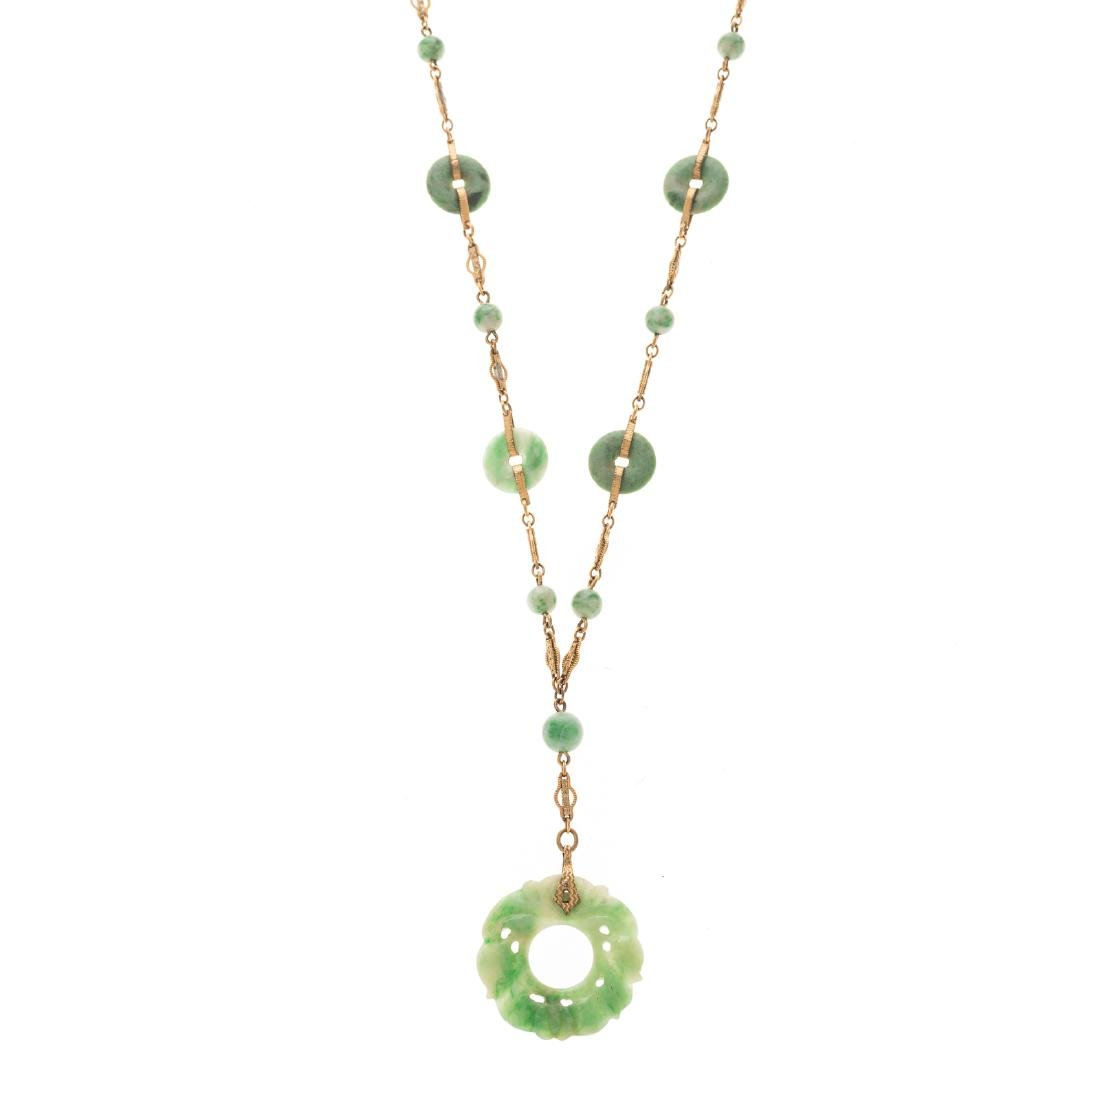 A Lady's Carved Jade and Bead Lariat Necklace